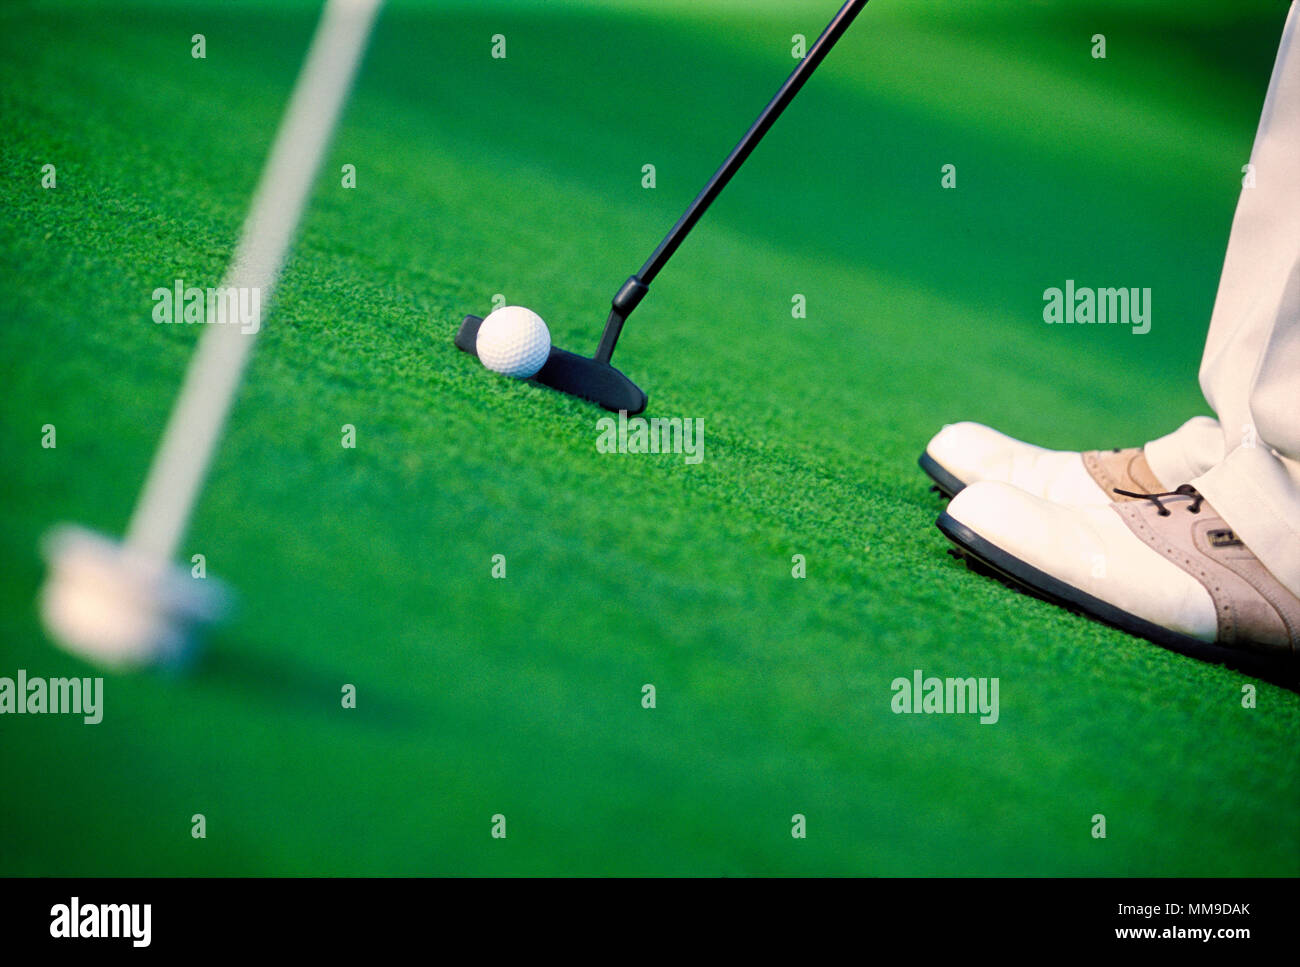 Lining up a putt on a practice green. - Stock Image